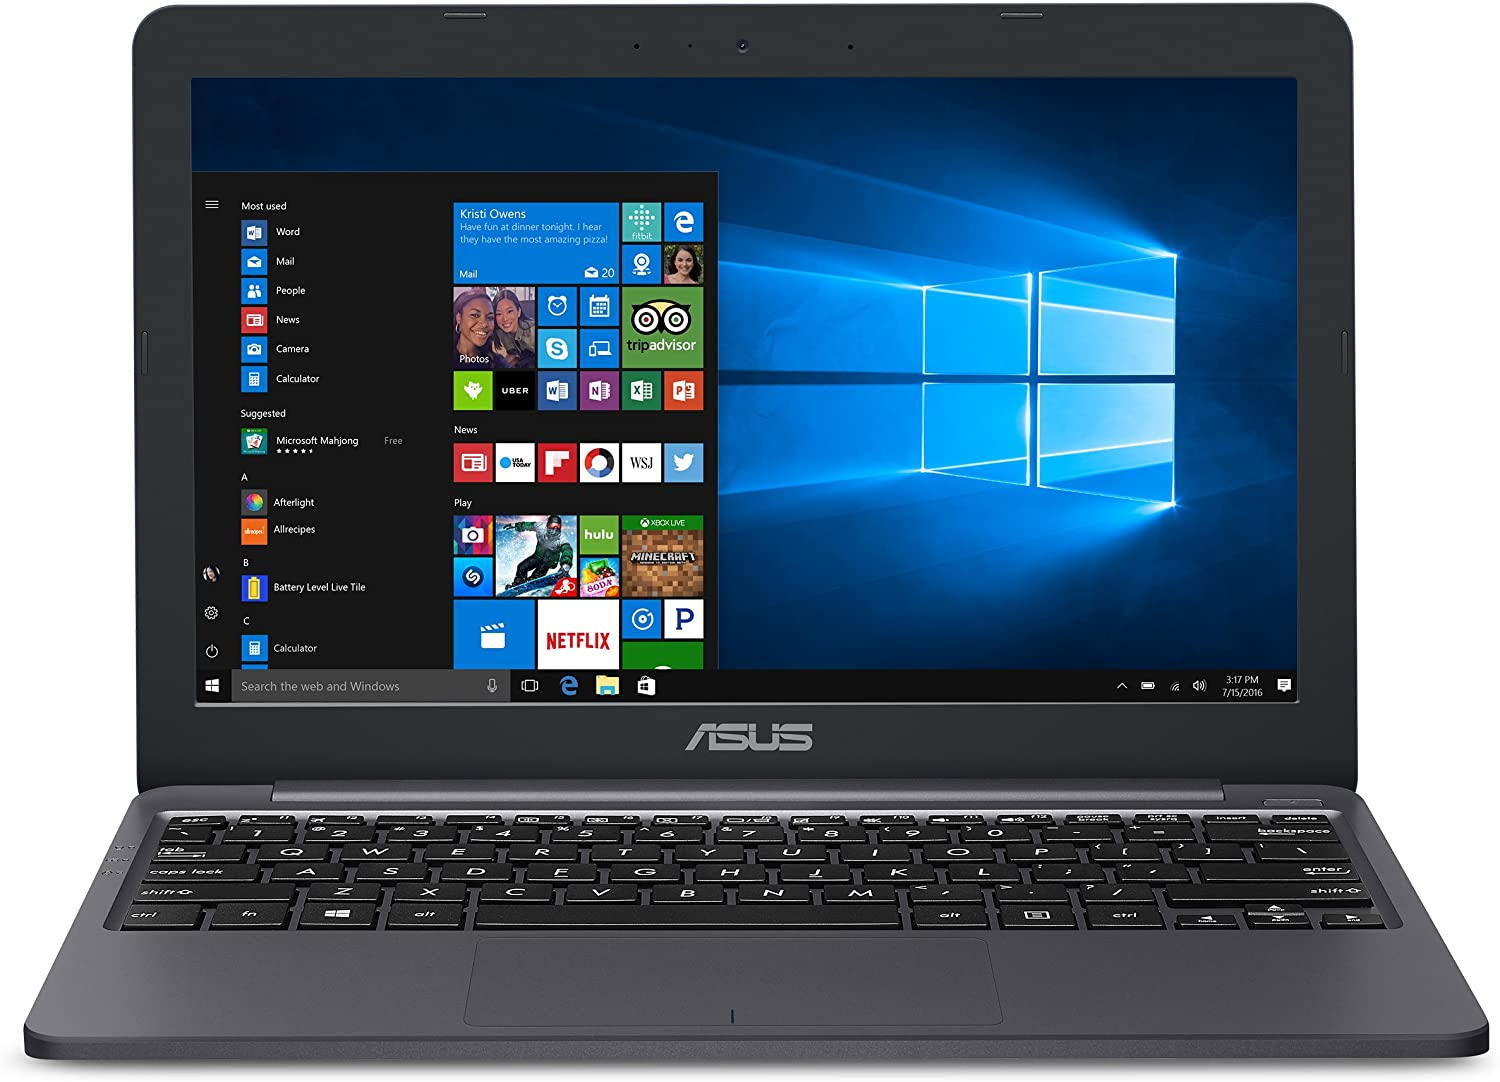 Best Laptops For College Students-ASUS VivoBook L203MA Ultra-Thin Laptop-bestfor2021.com